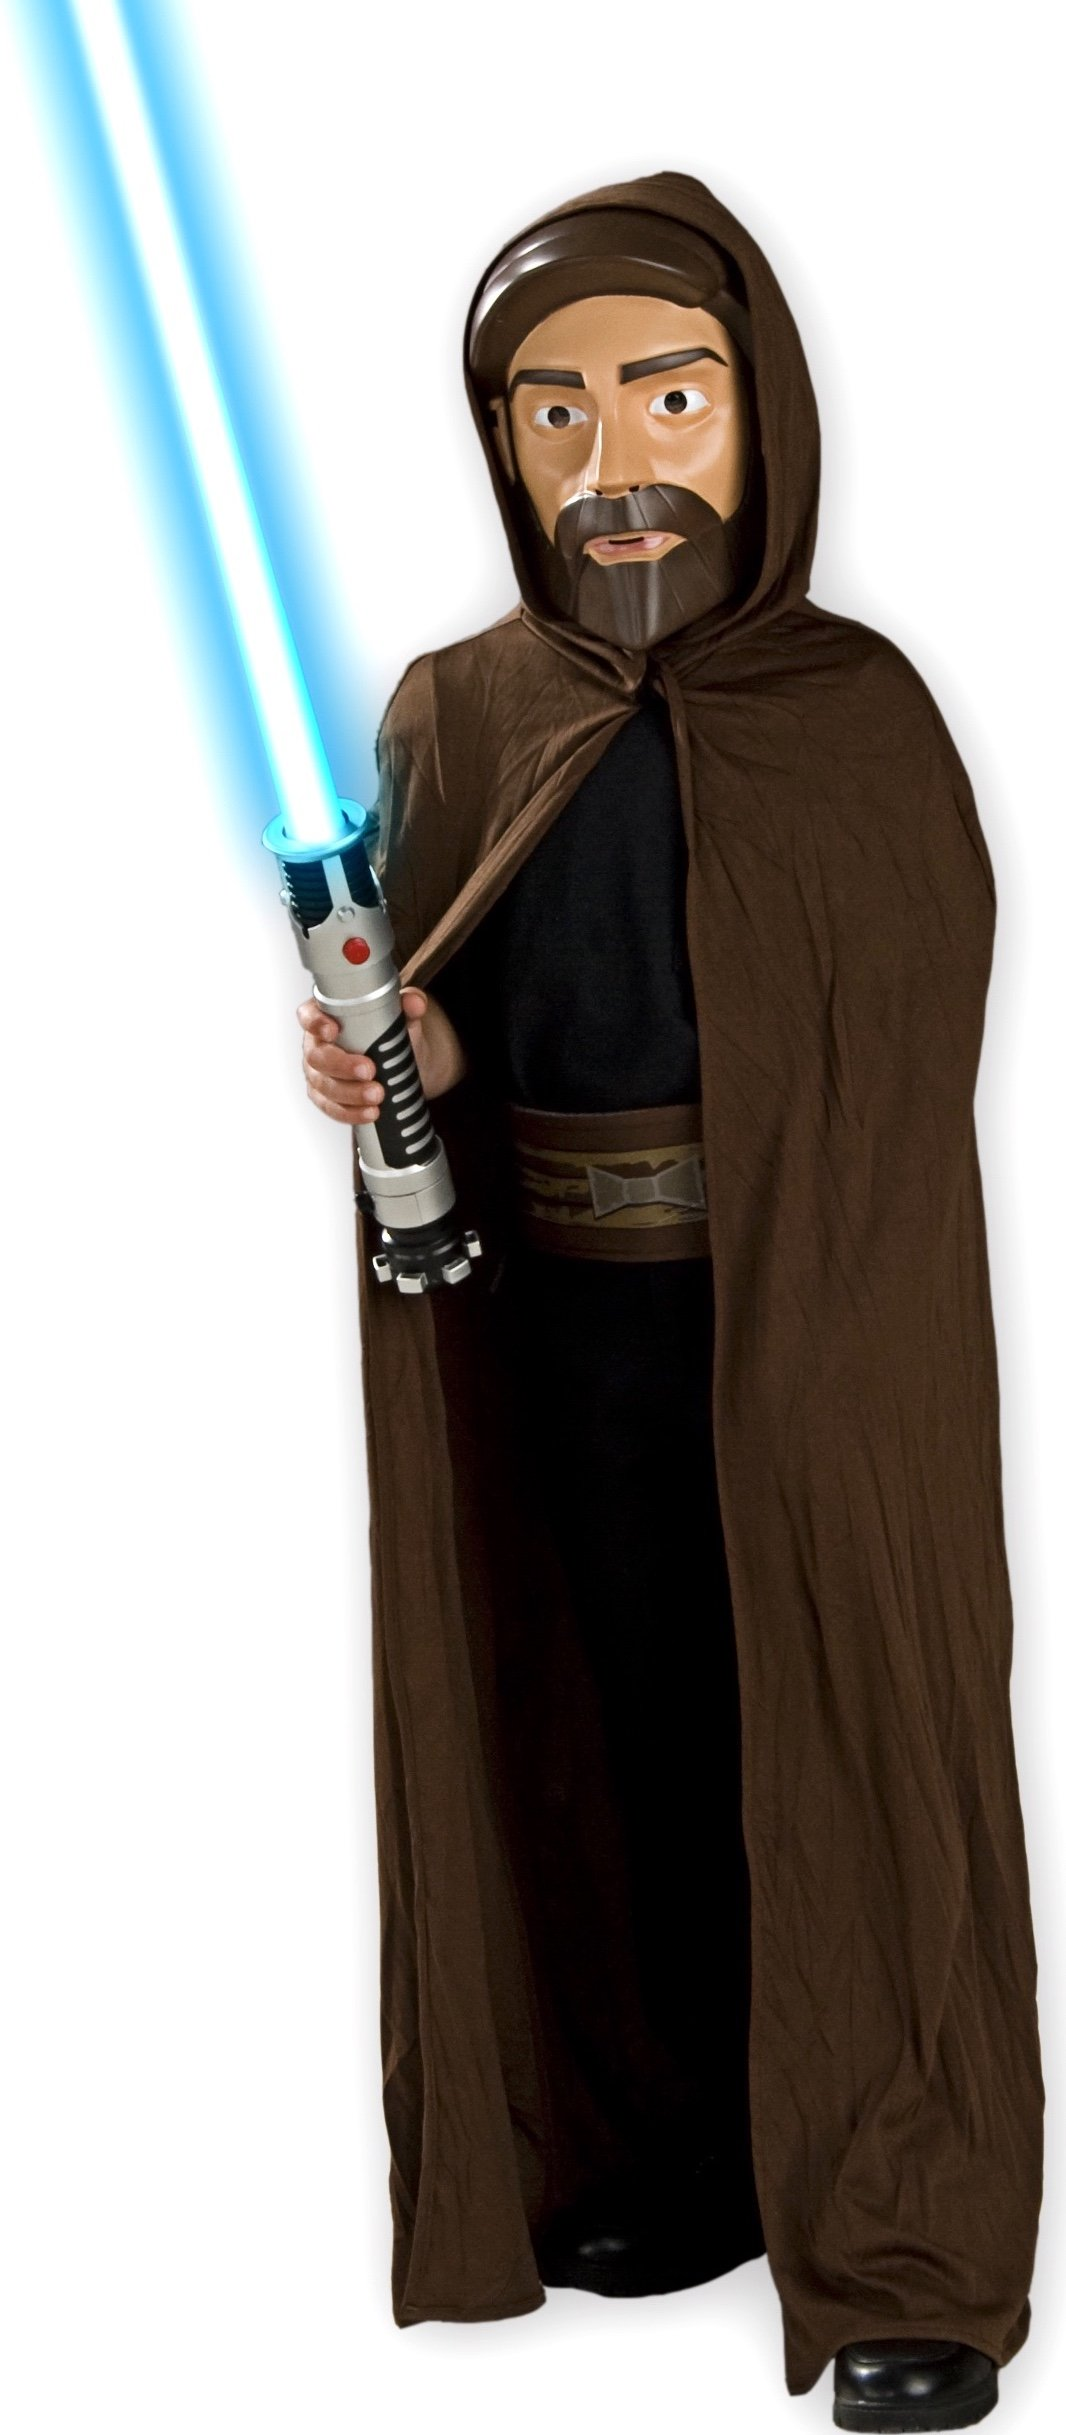 LICENSED HOODED JEDI ROBE OBI-WAN ANAKIN LUKE SKYWALKER STAR WARS COSTUME